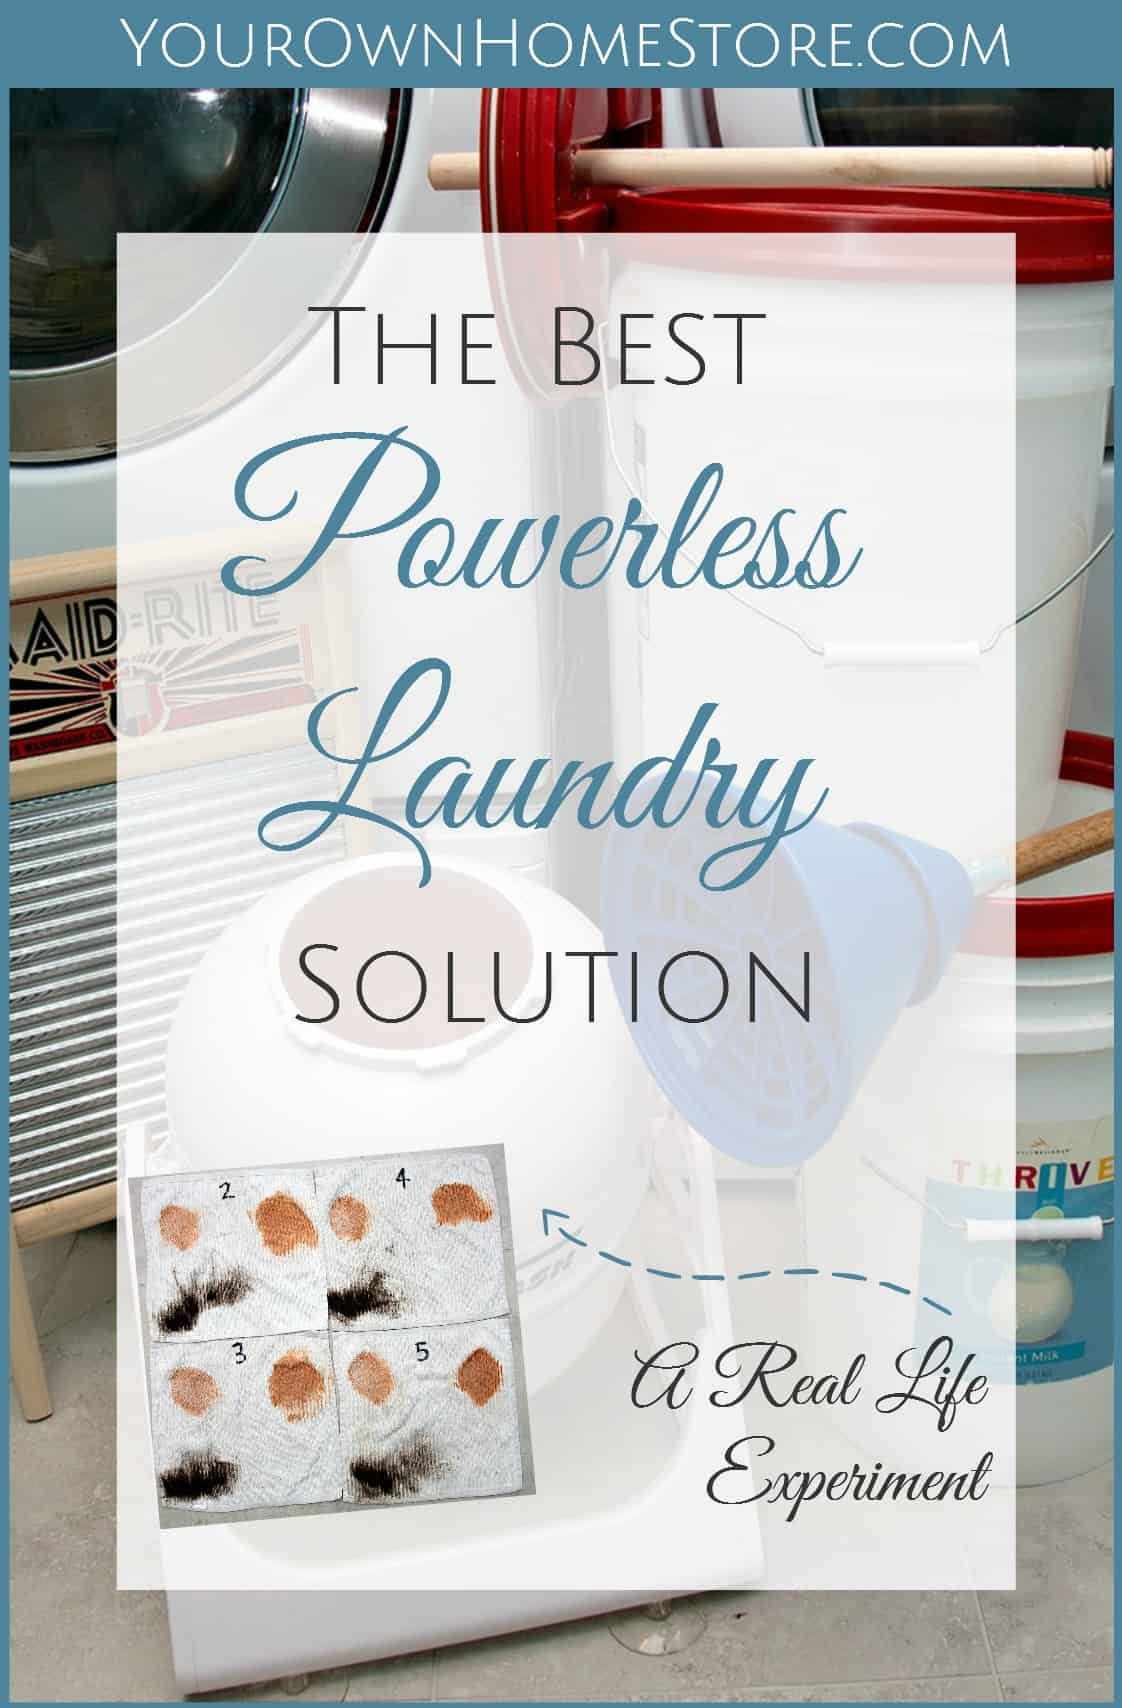 Powerless Laundry Solution | Doing laundry without power